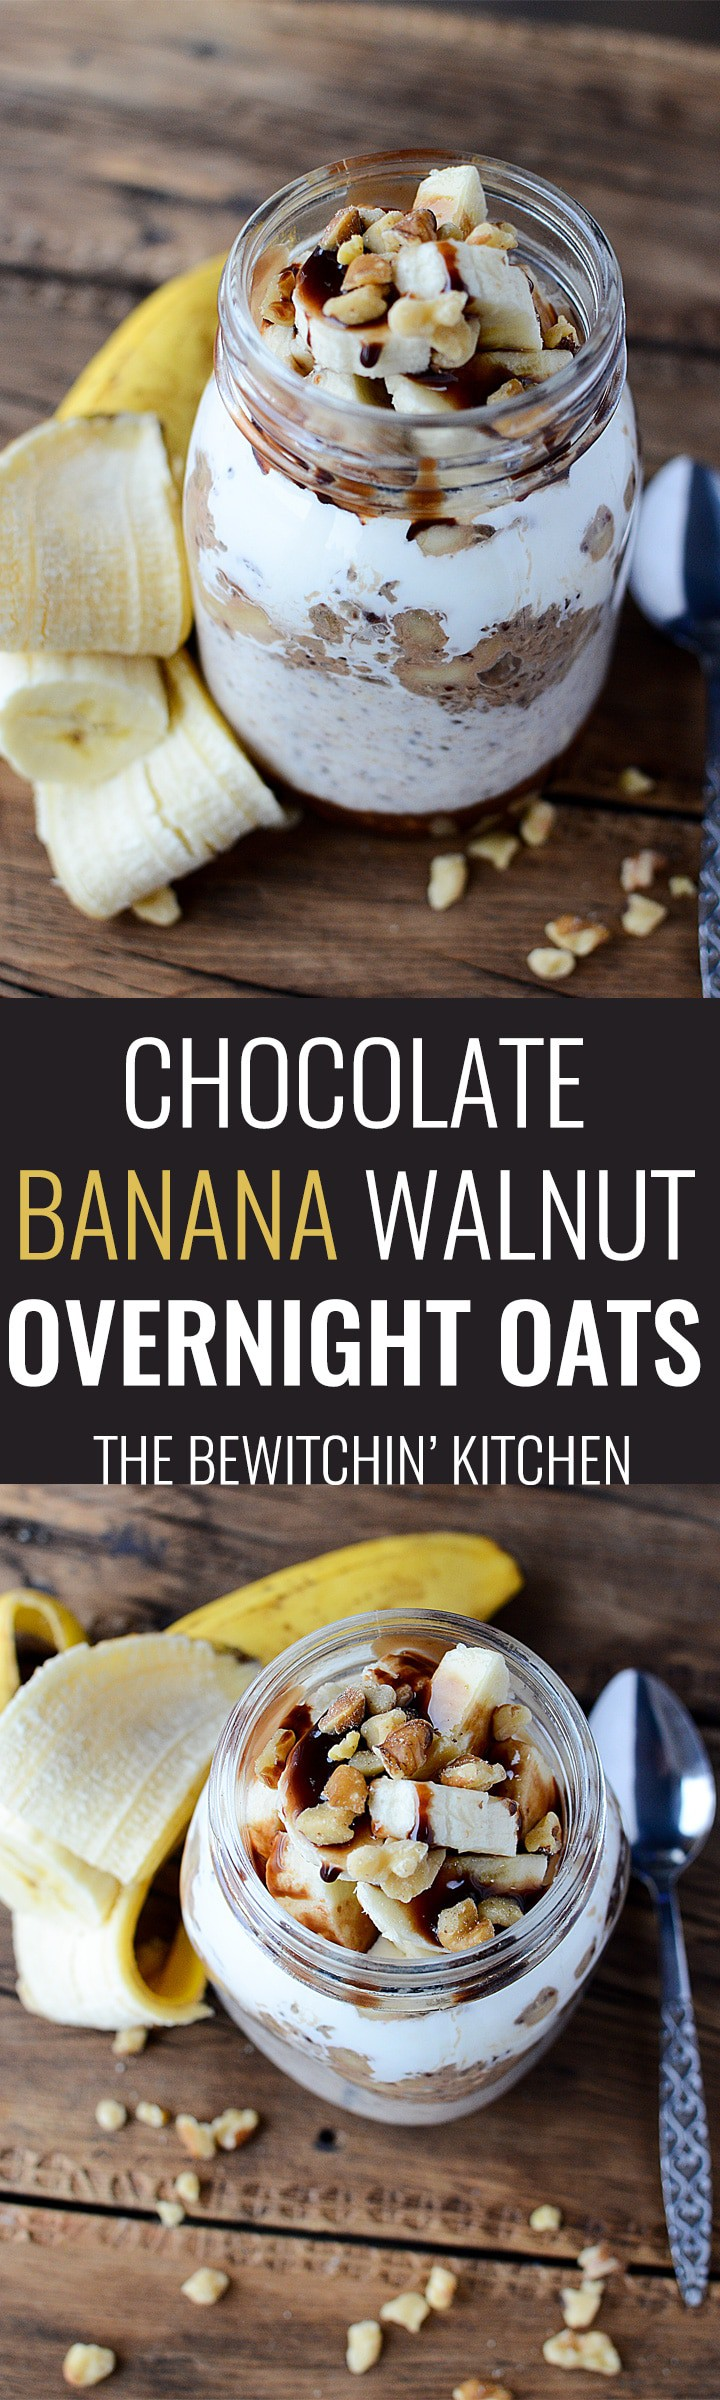 Chocolate Banana Walnut Overnight Oats - This healthy overnight oats recipe has yogurt, chia, bananas, walnuts and chocolate. It's a healthy breakfast with a bit of decadence. An easy meal prep morning treat. | thebewitchinkitchen.com